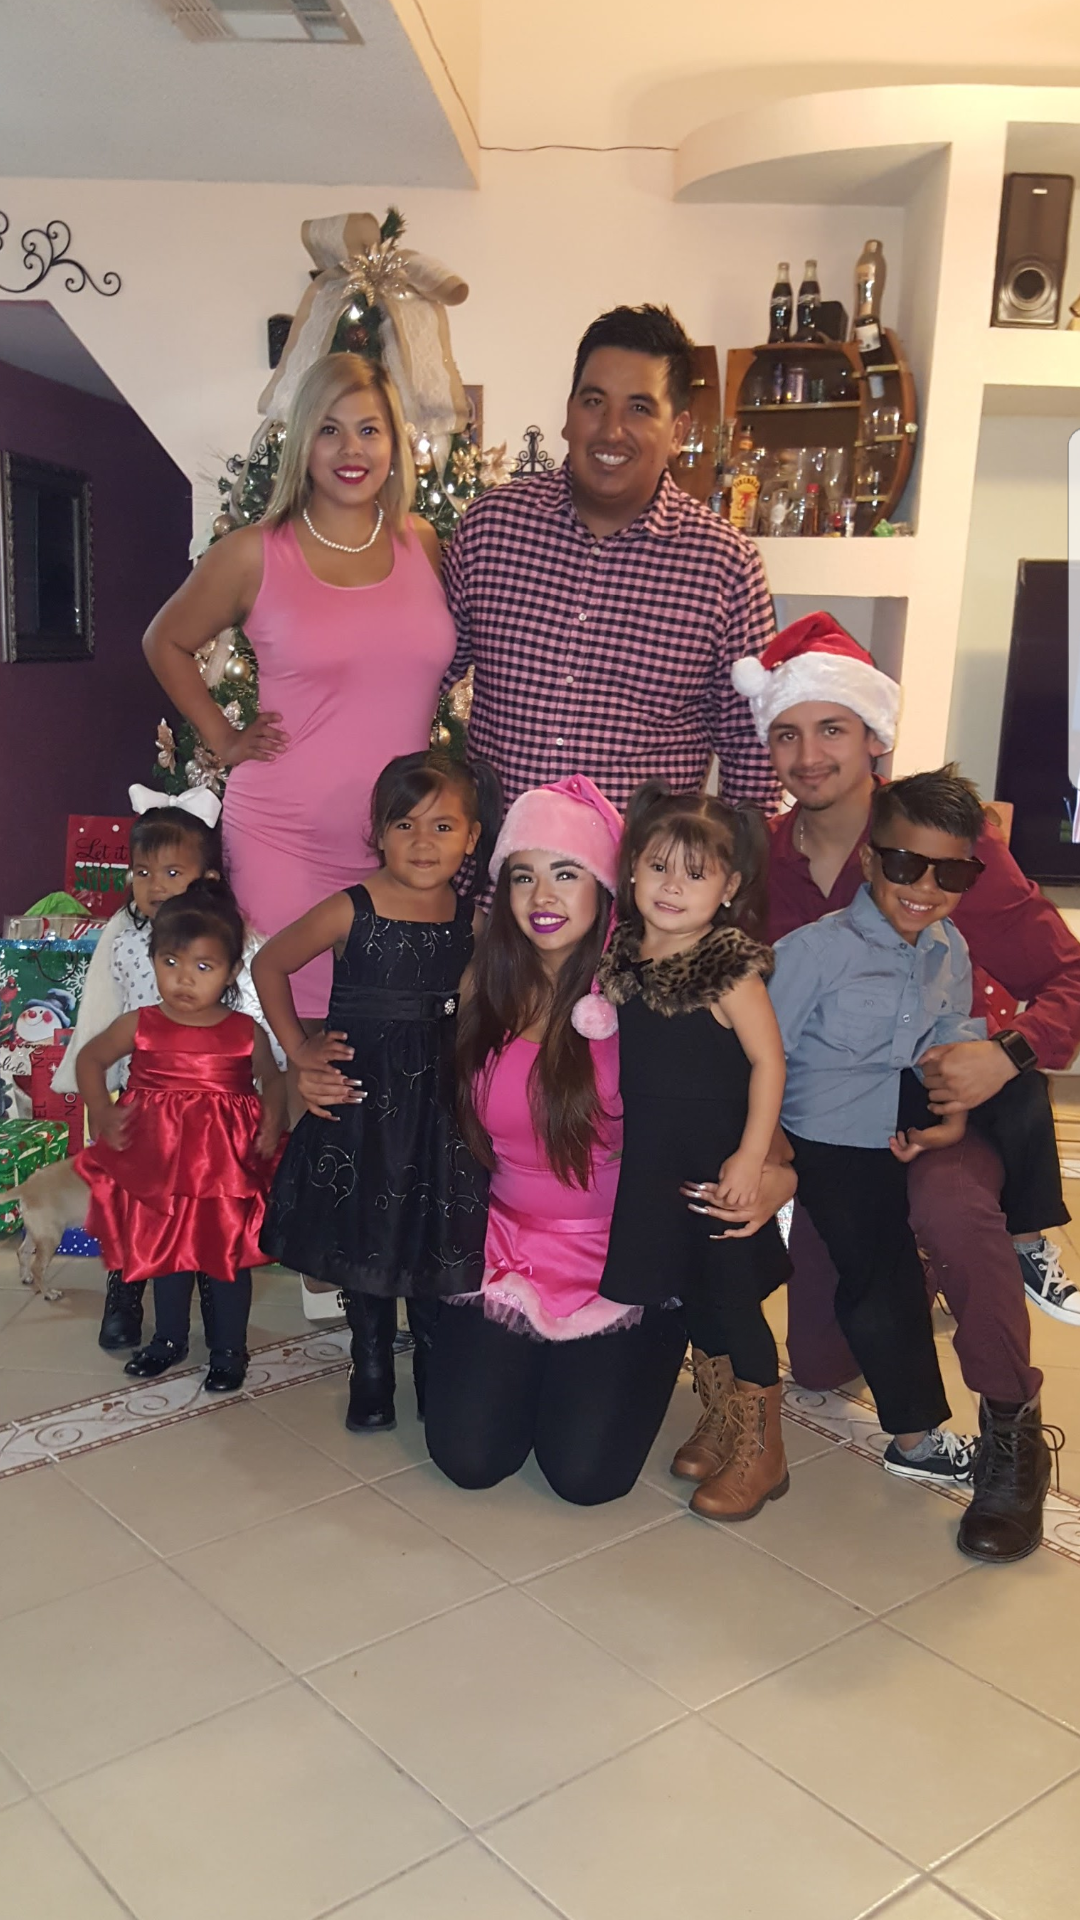 Juan Jaquez with family. Sheriff's investigators said he was killed Sunday, Jan. 14, 2018 during a shooting involving an off-duty Border Patrol agent.